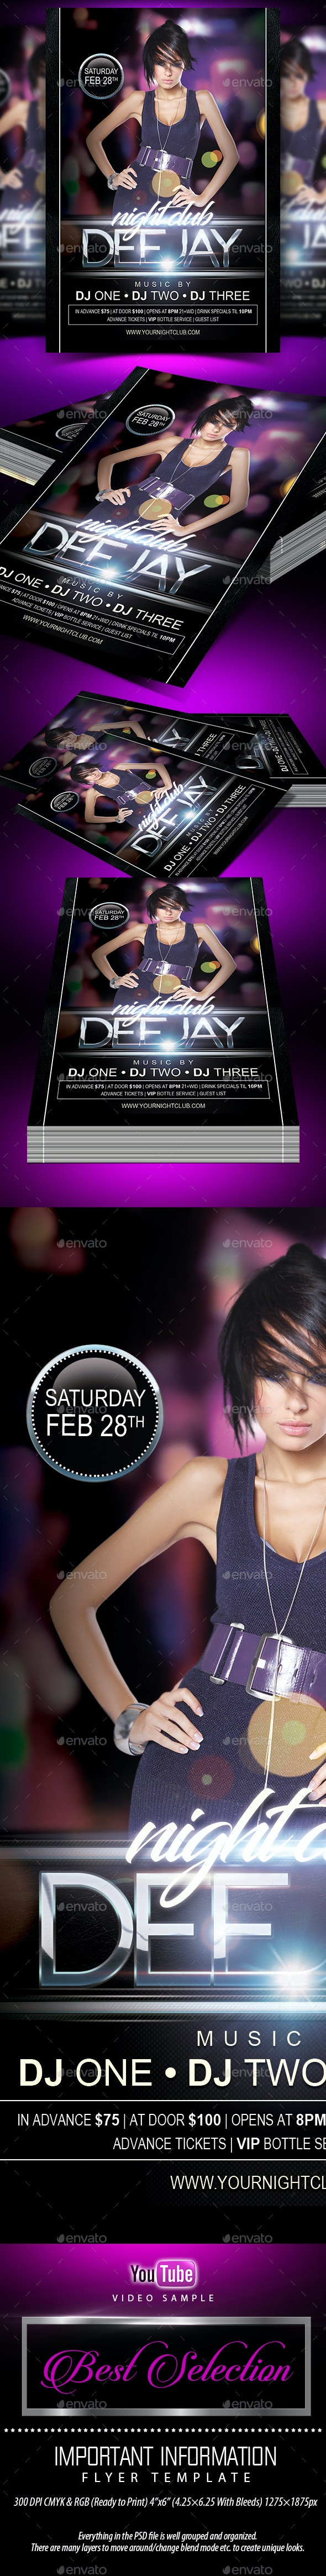 Nightclub Deejay  (Flyer Template 4x6) - Clubs & Parties Events